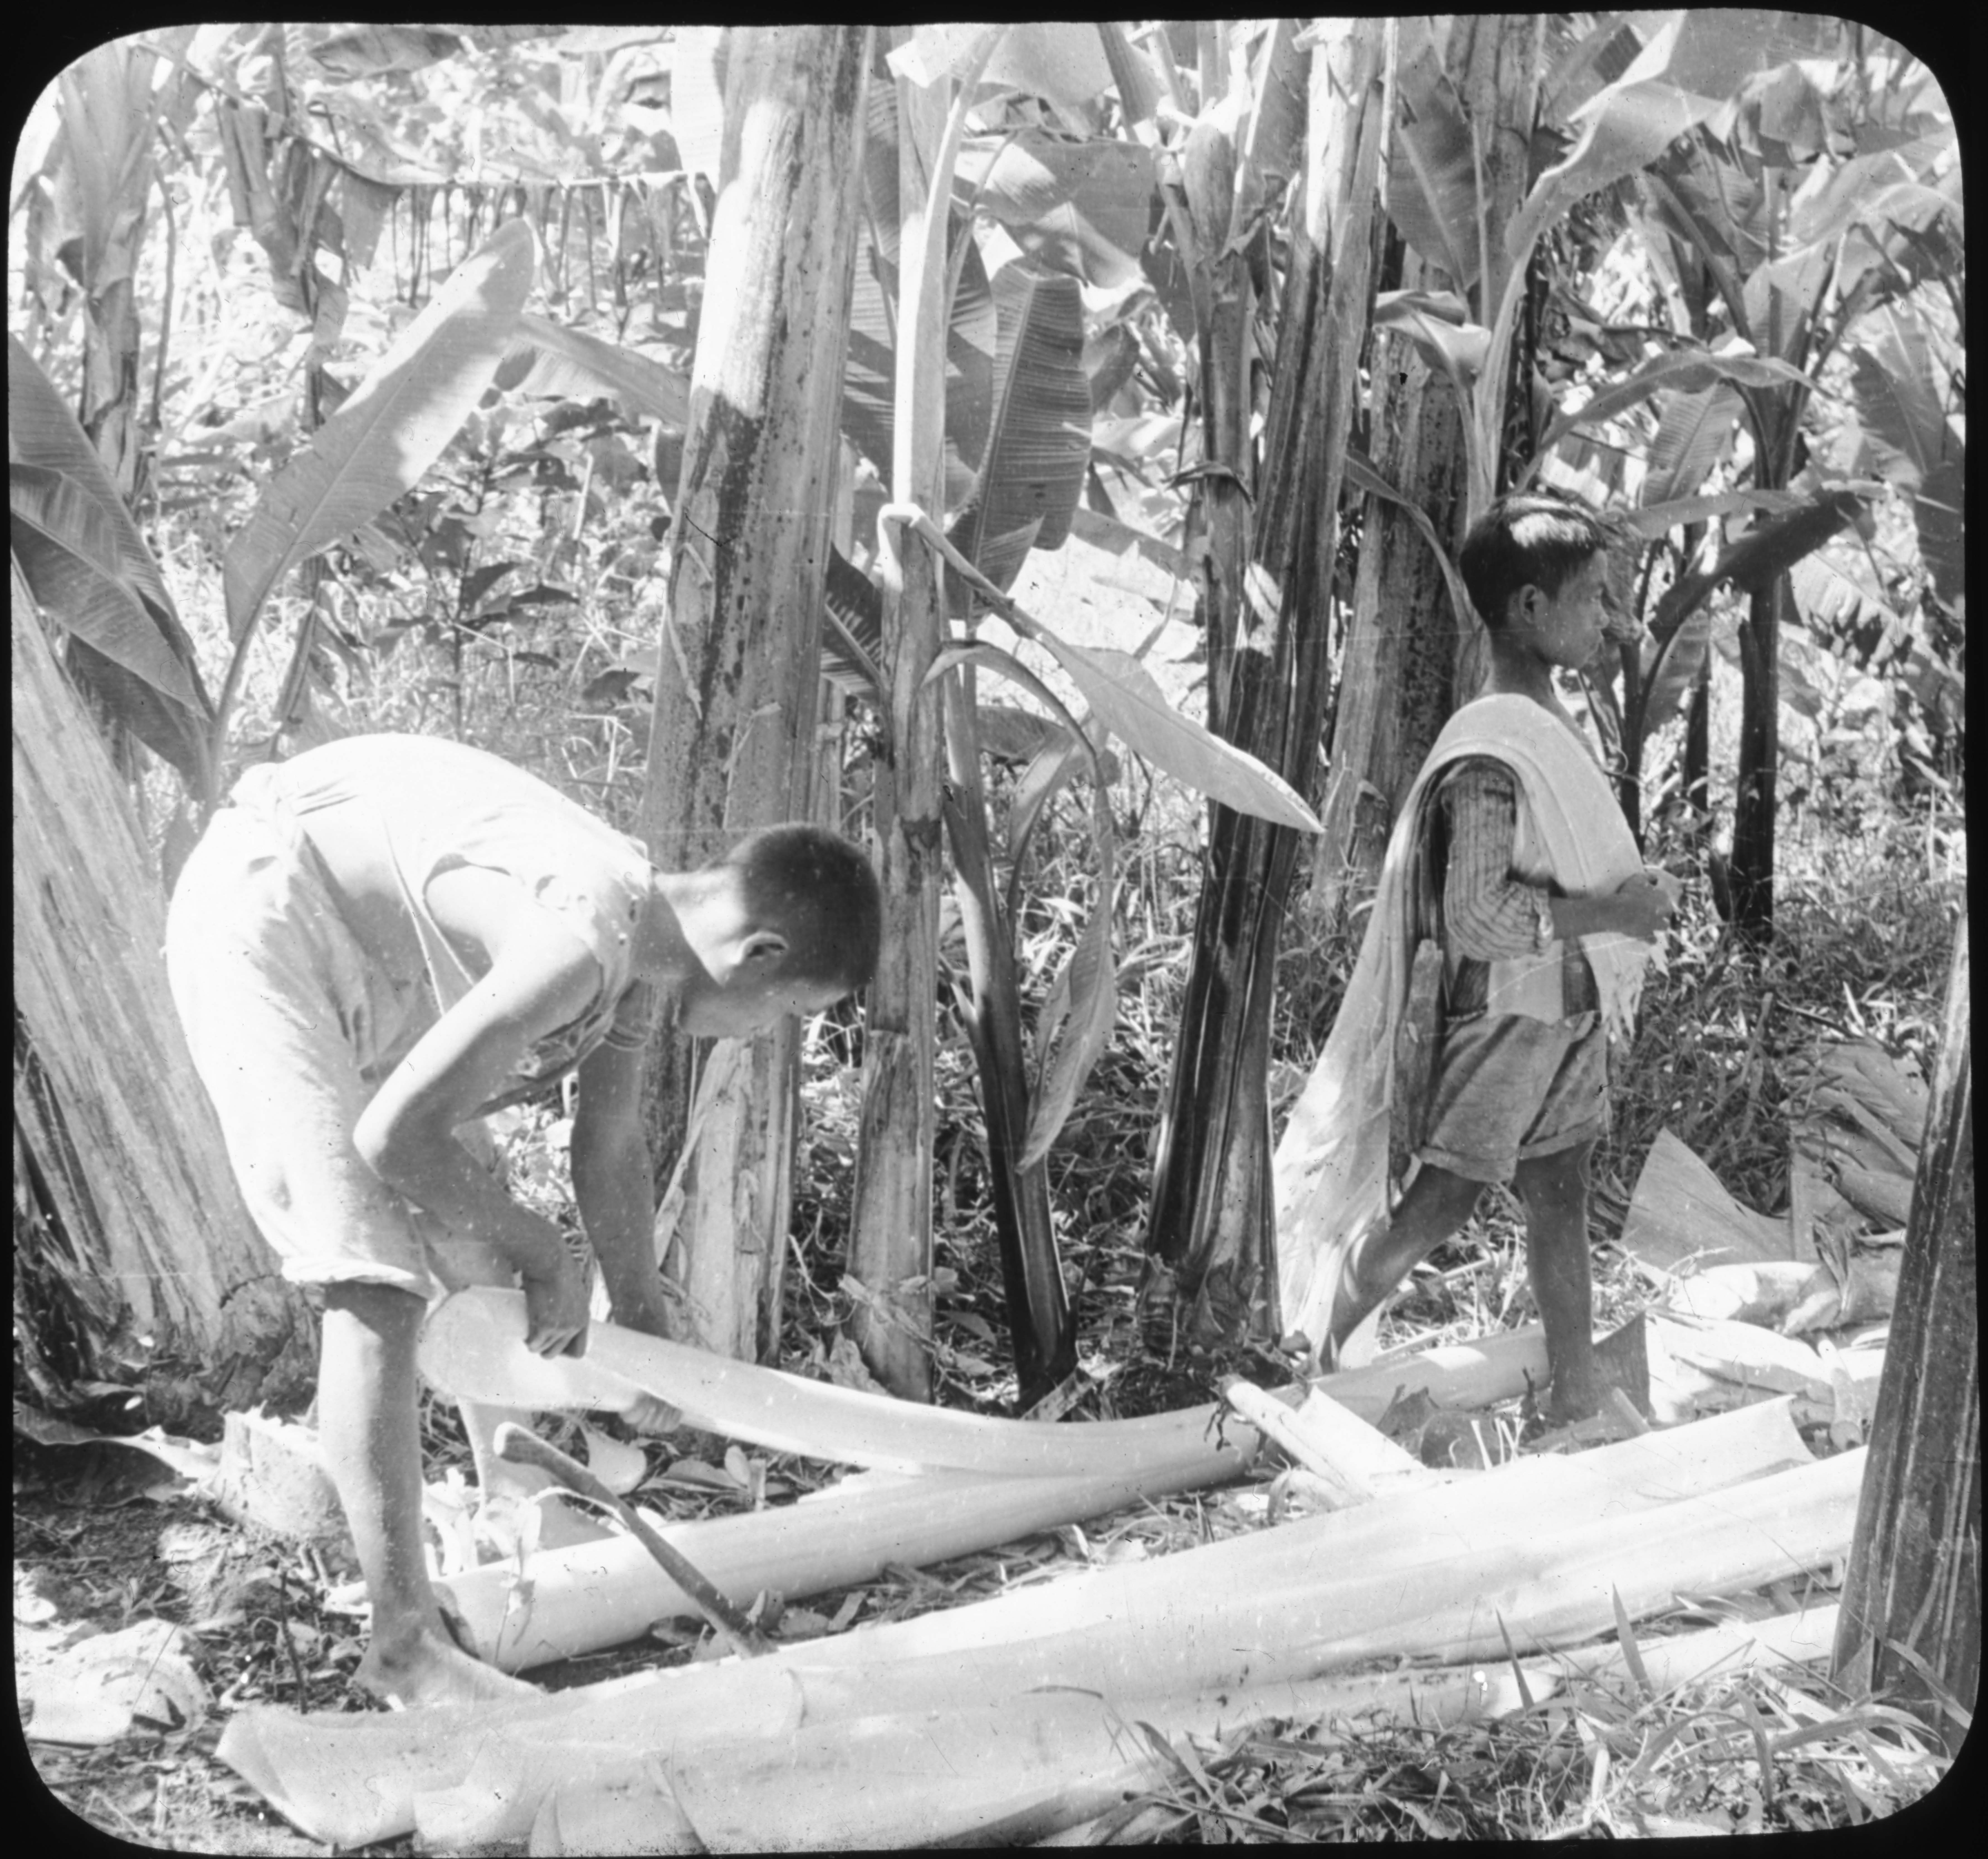 Manila Hemp Industry-Stripping the Tree, Philippines.